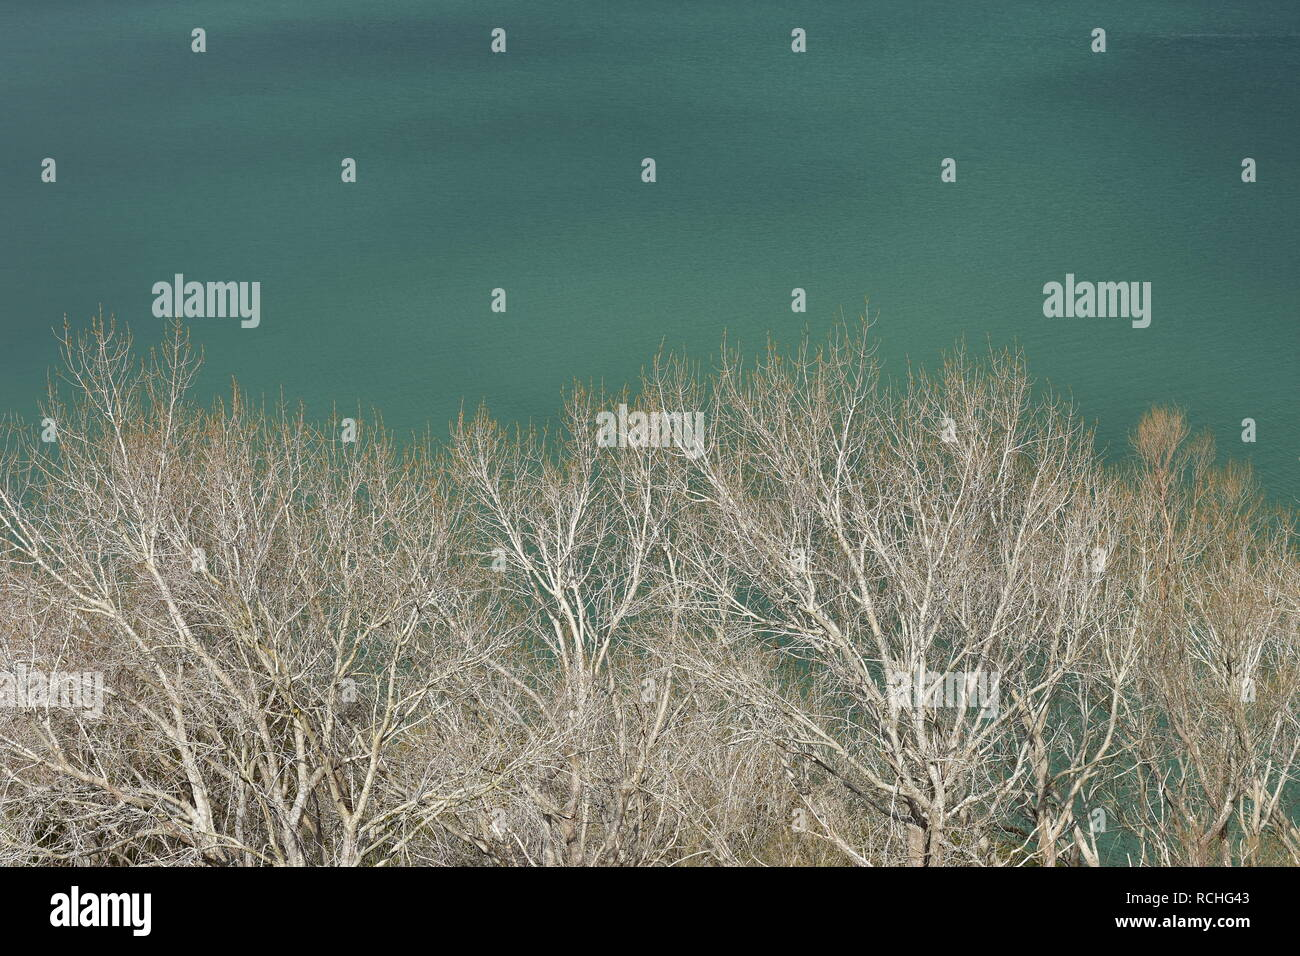 Green sea surface behind dense tree tops of trees without leaves and with white bark on stormy day. - Stock Image